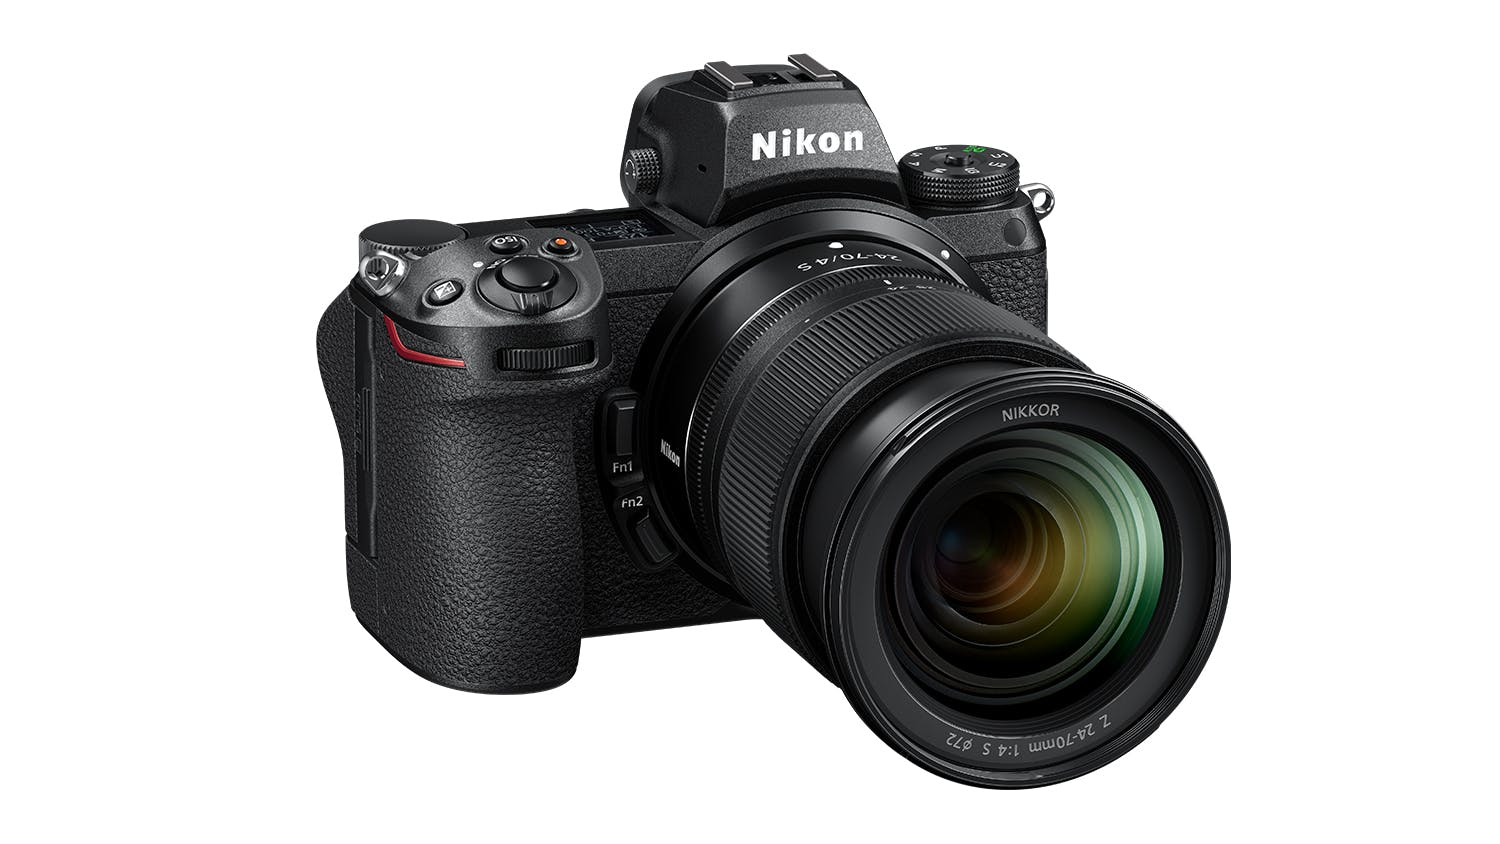 Nikon Z 6II Mirrorless Camera with 24-70mm f/4 Lens